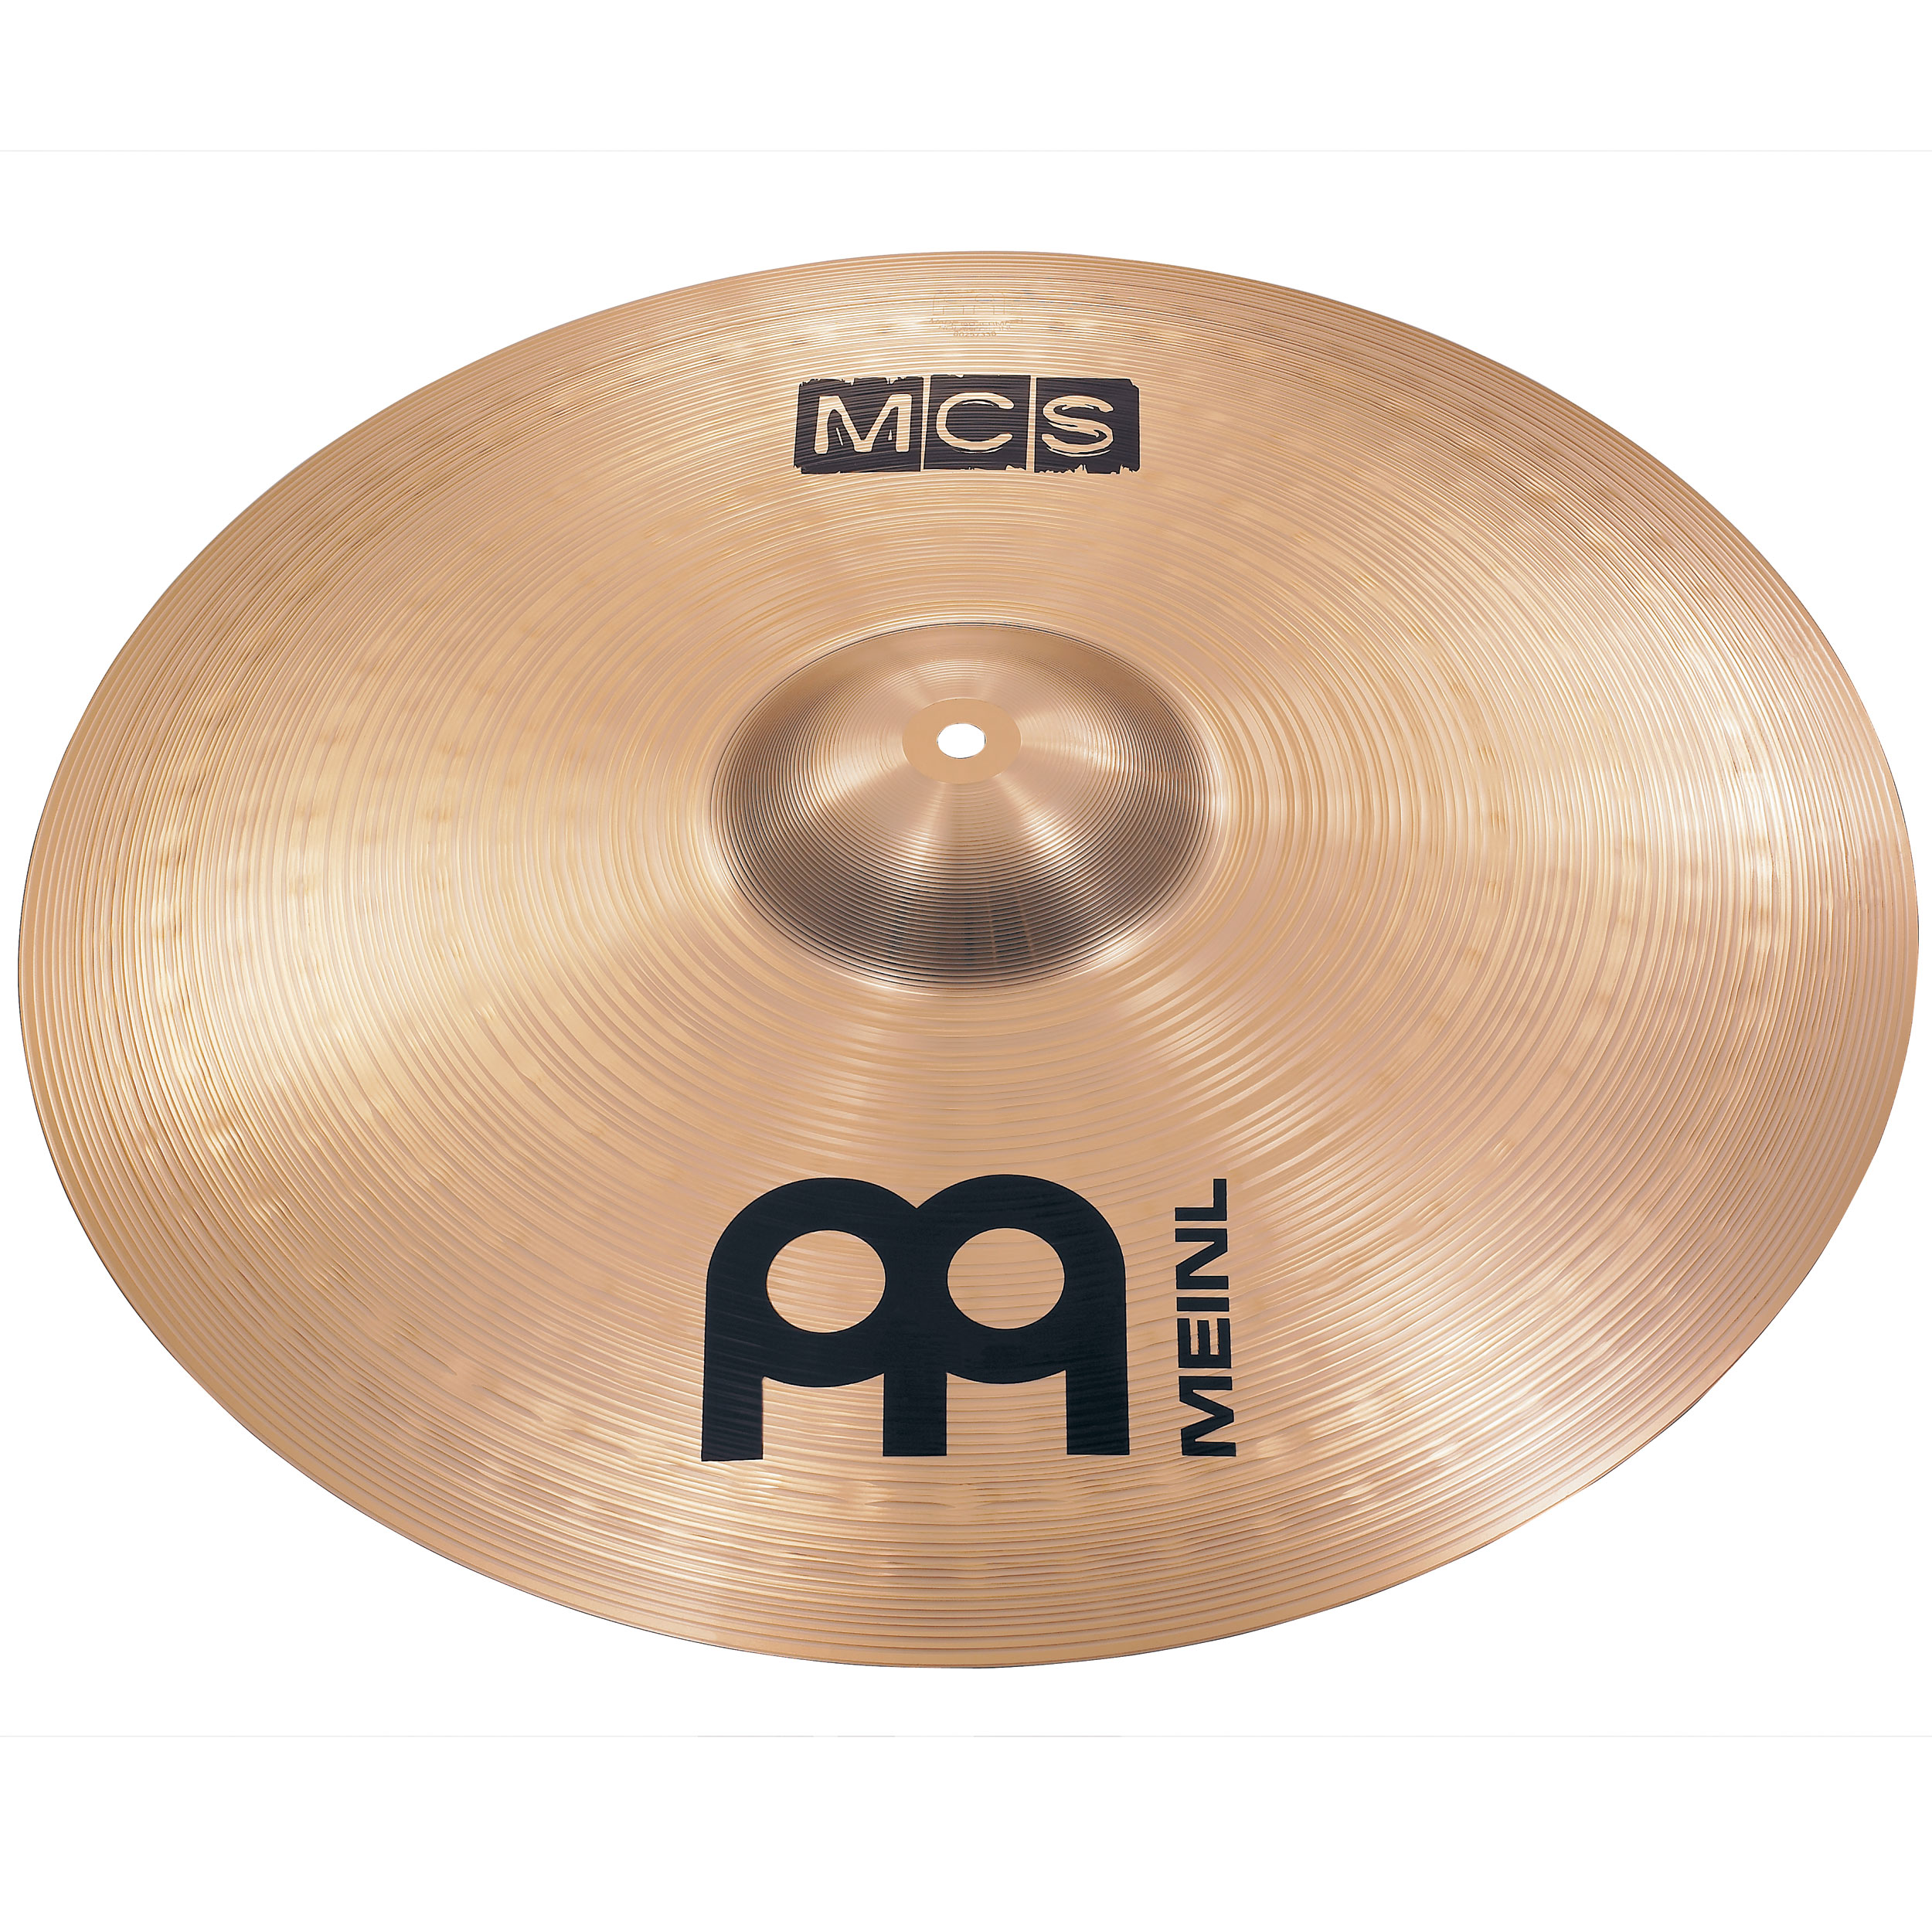 "Meinl 20"" MCS Medium Ride Cymbal"